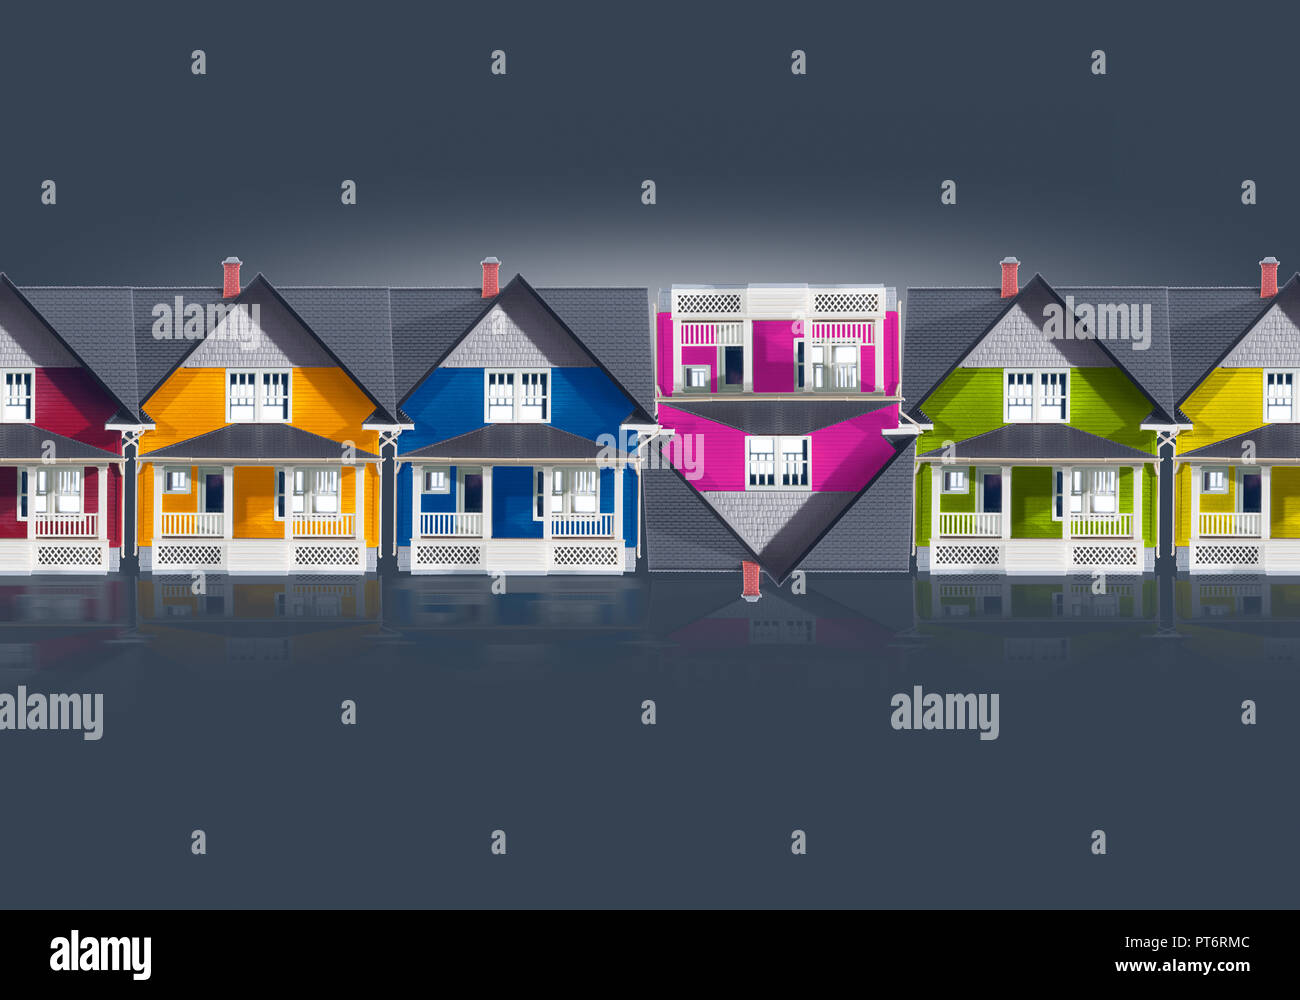 Concept A row of Color Houses Simulating Up Down Arrows, House Markets, Real Estate, Financial, Mortgage Equity - Stock Image